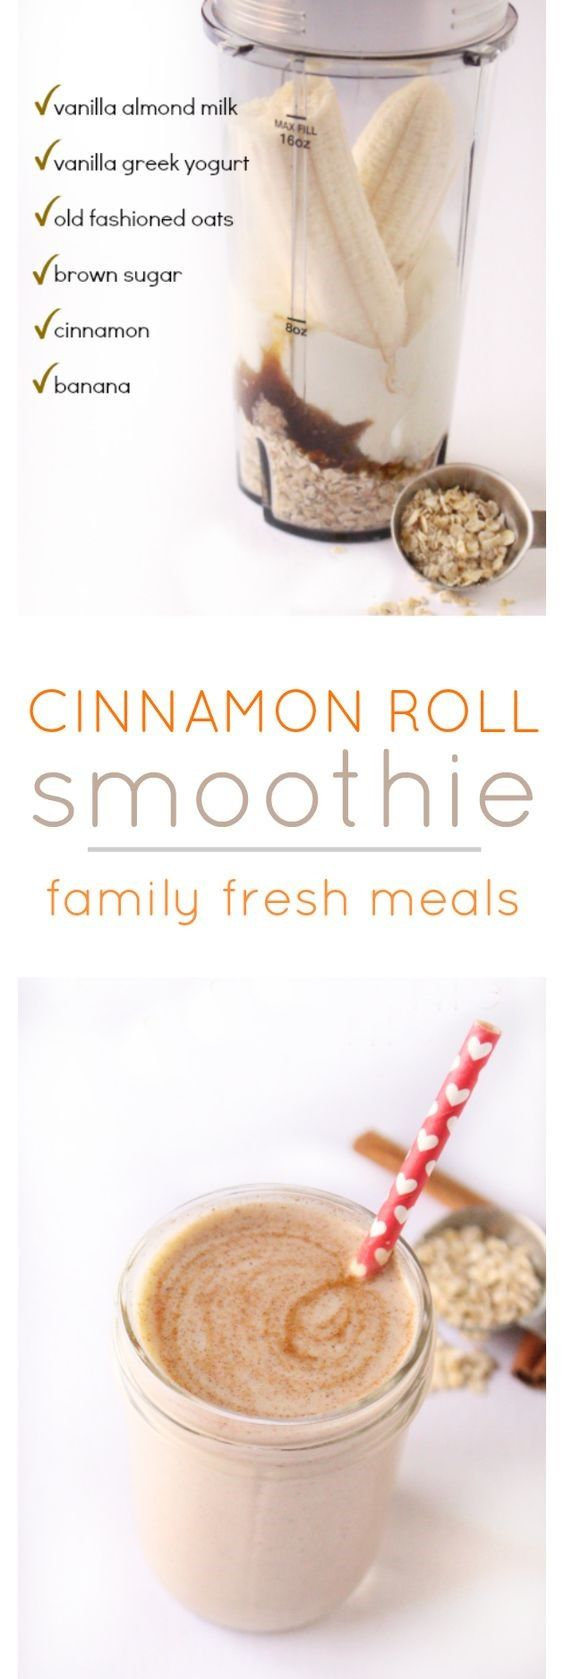 No matter what your favorite dessert may be, from a banana split to a chocolate treat, there is always a smoothie or a milkshake version of it. Today we decided to make a cinnamon roll smoothie.